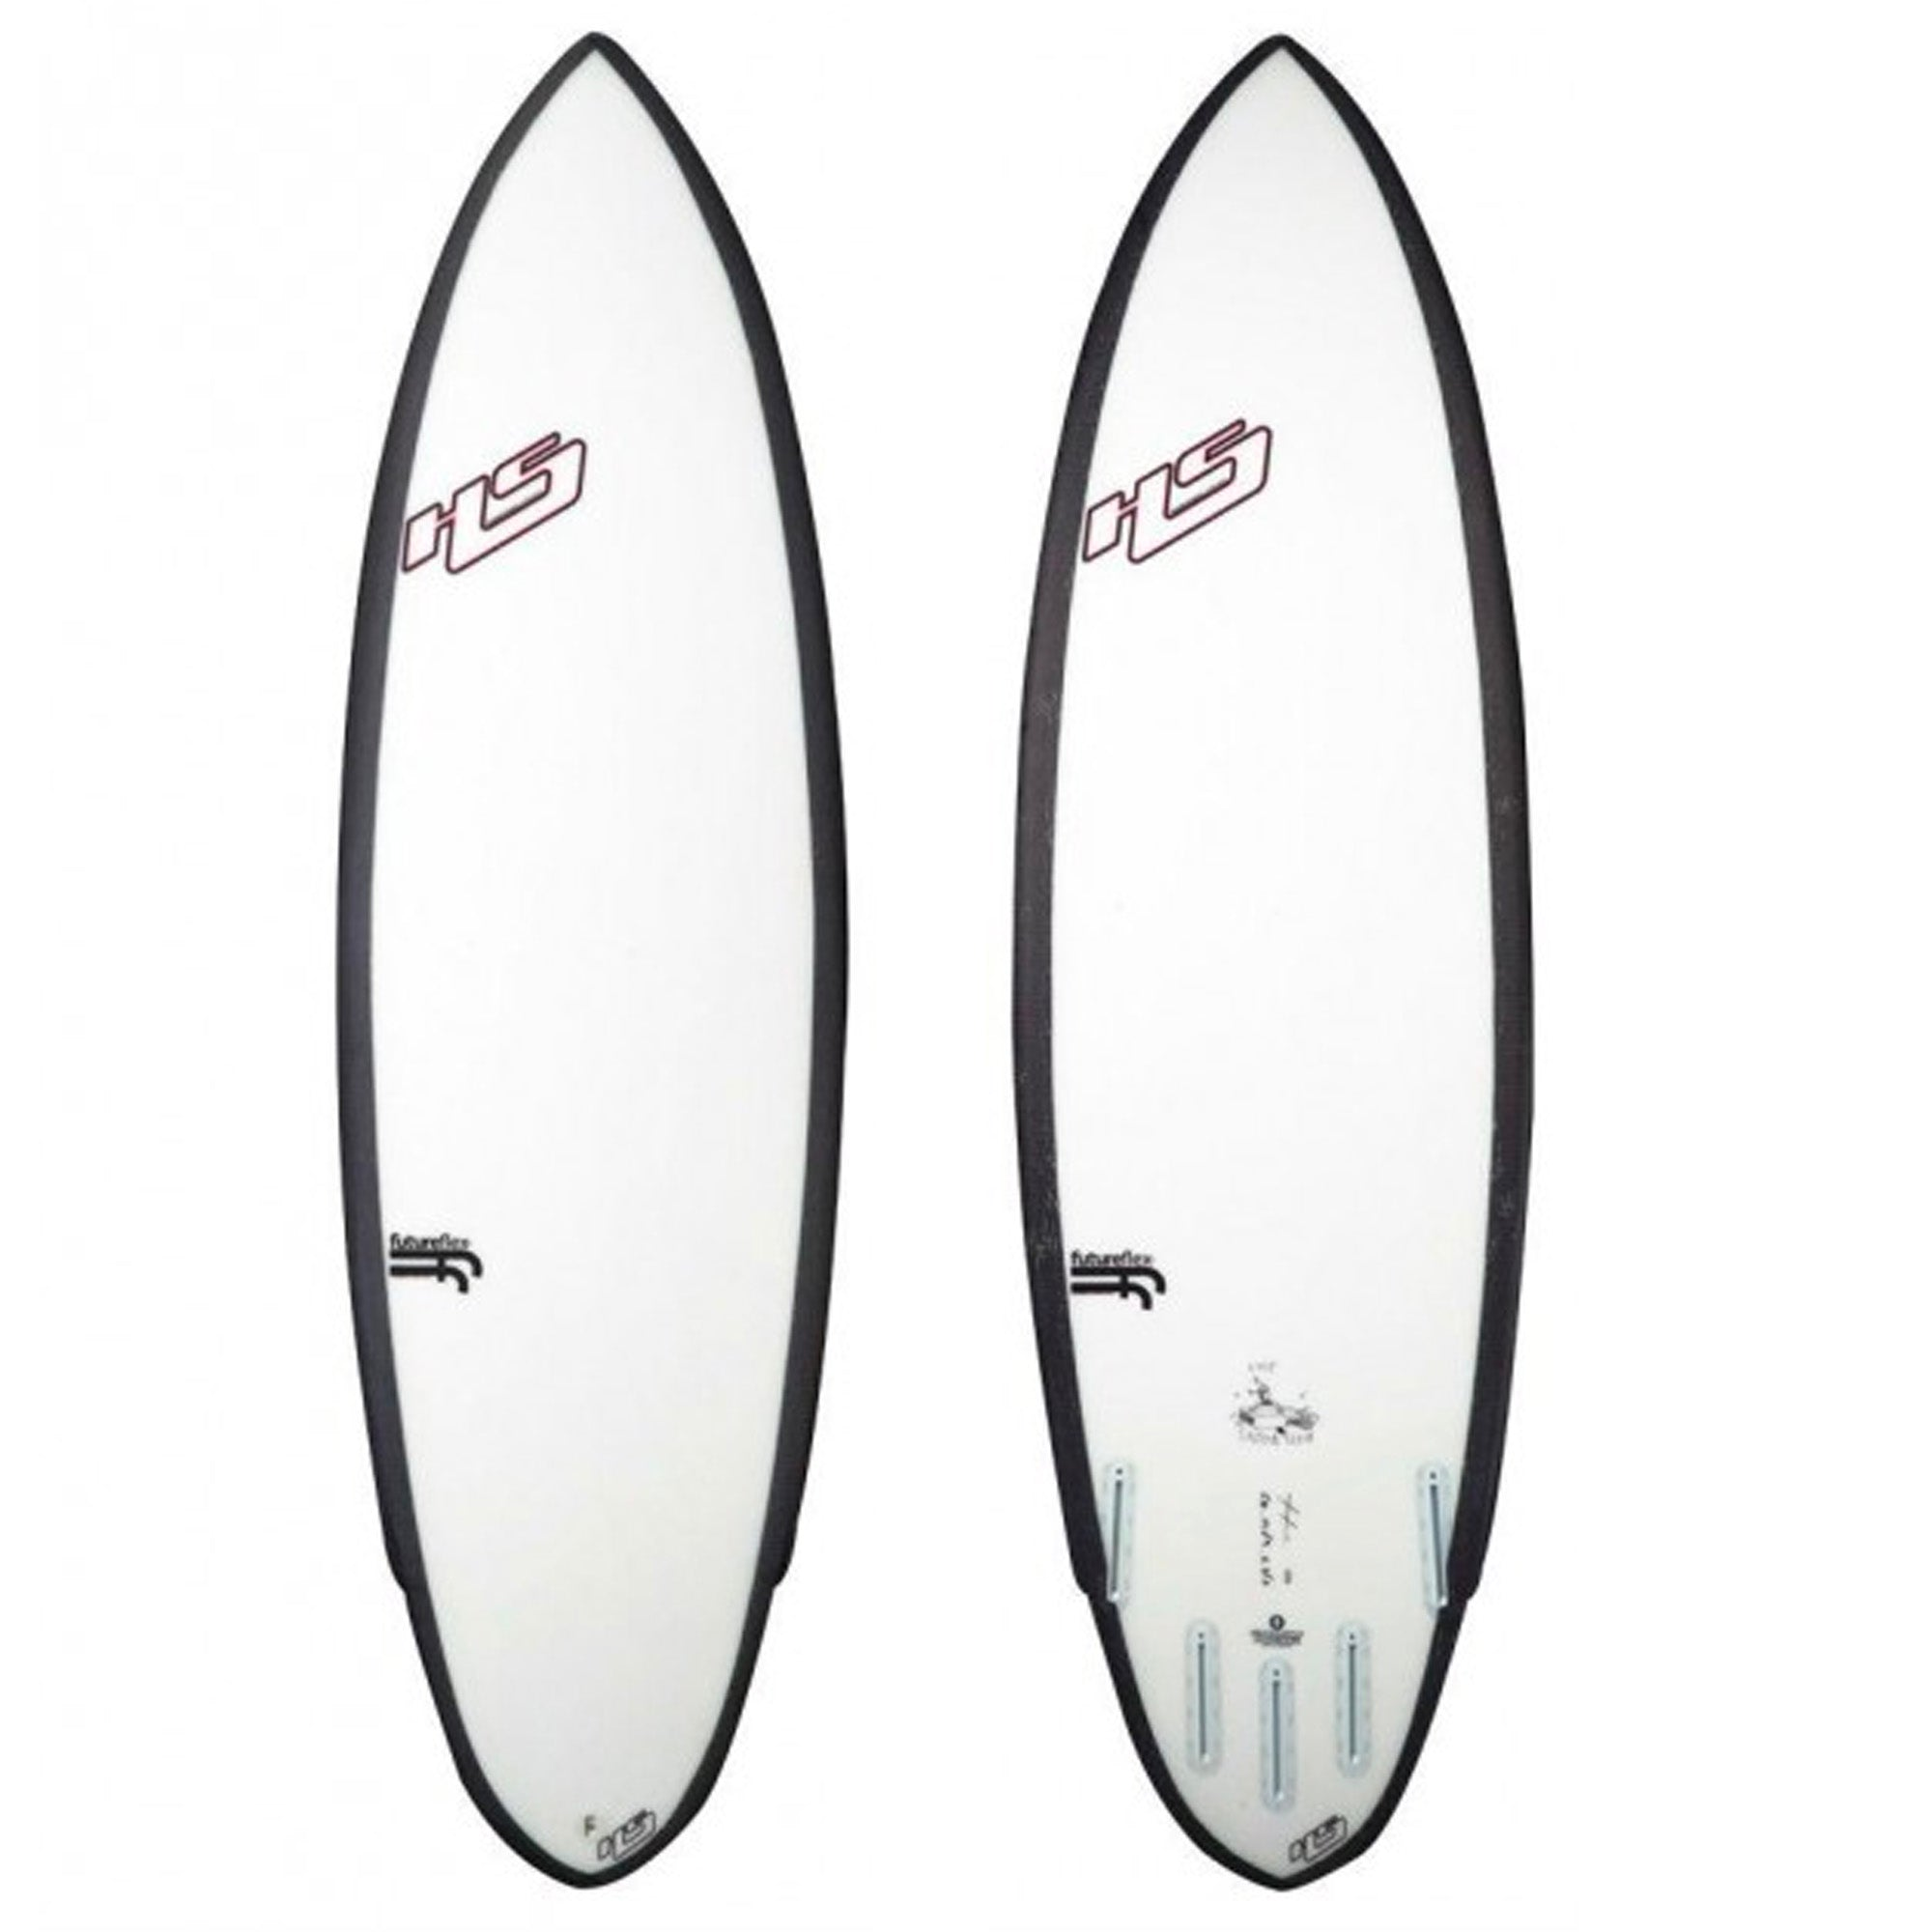 Hayden Shape Shred Sled Surfboard